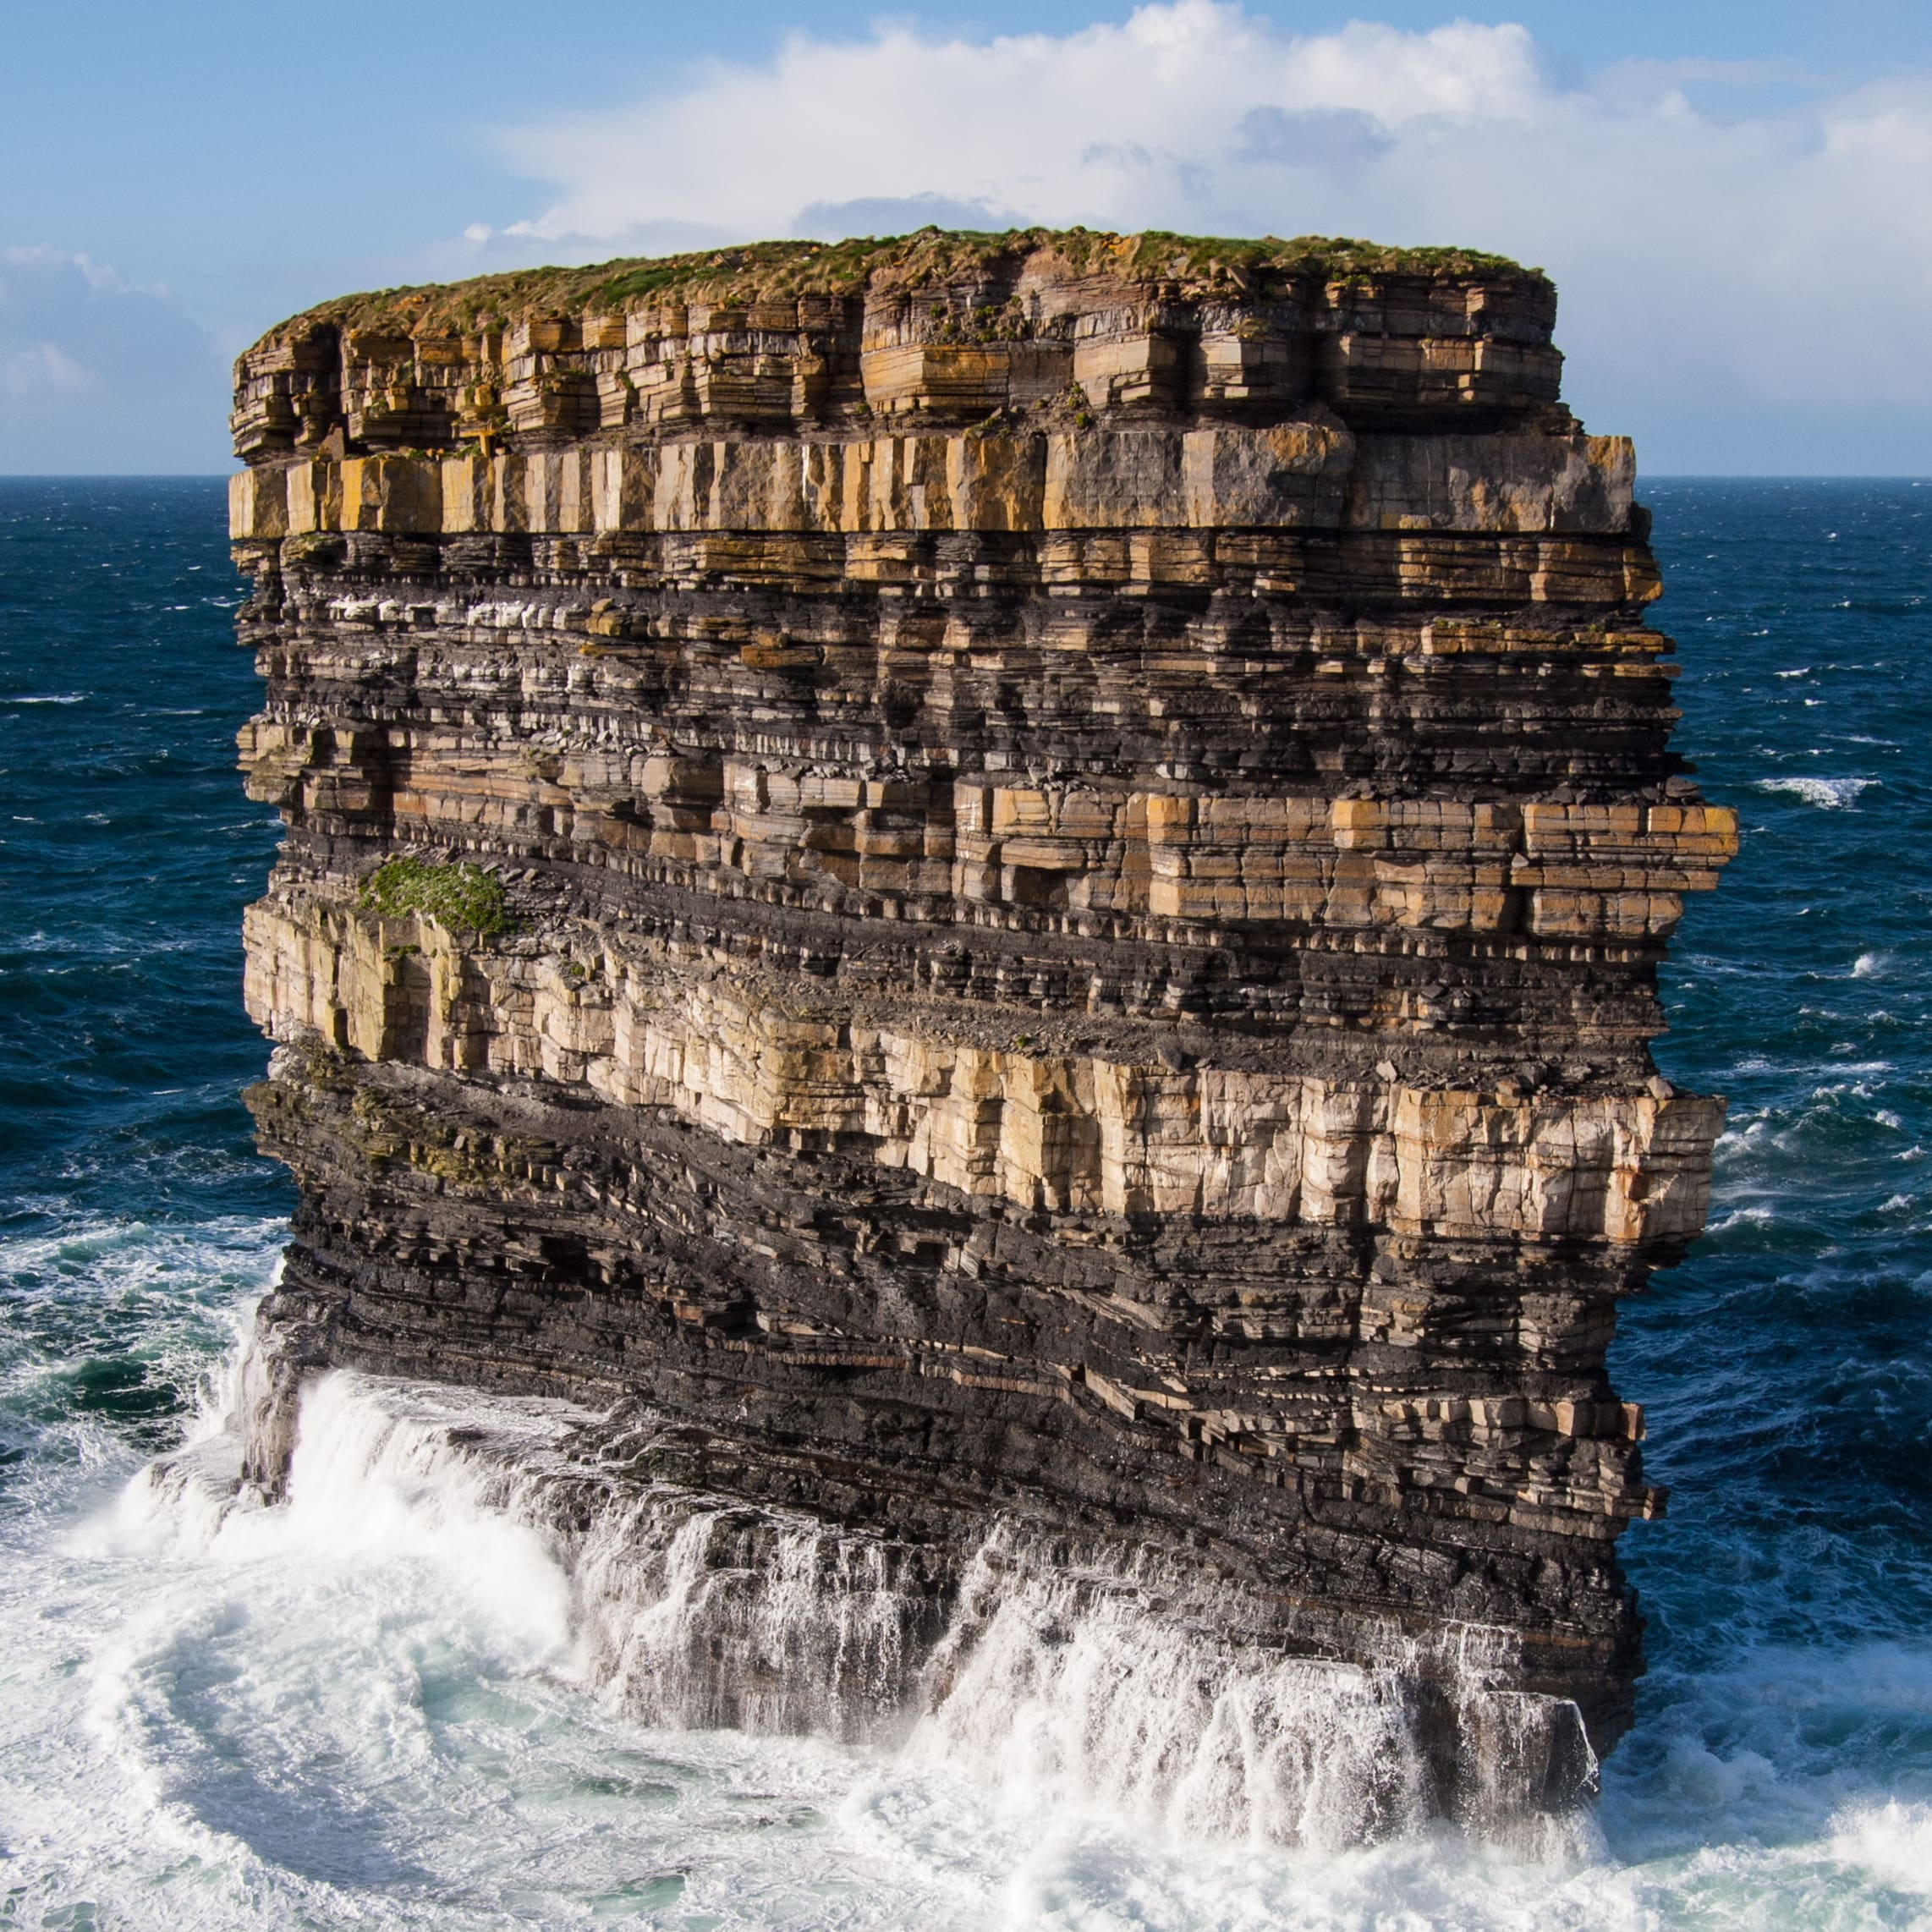 Visiting the awesome Irish Sea Stacks is a cool thing to do in Ireland